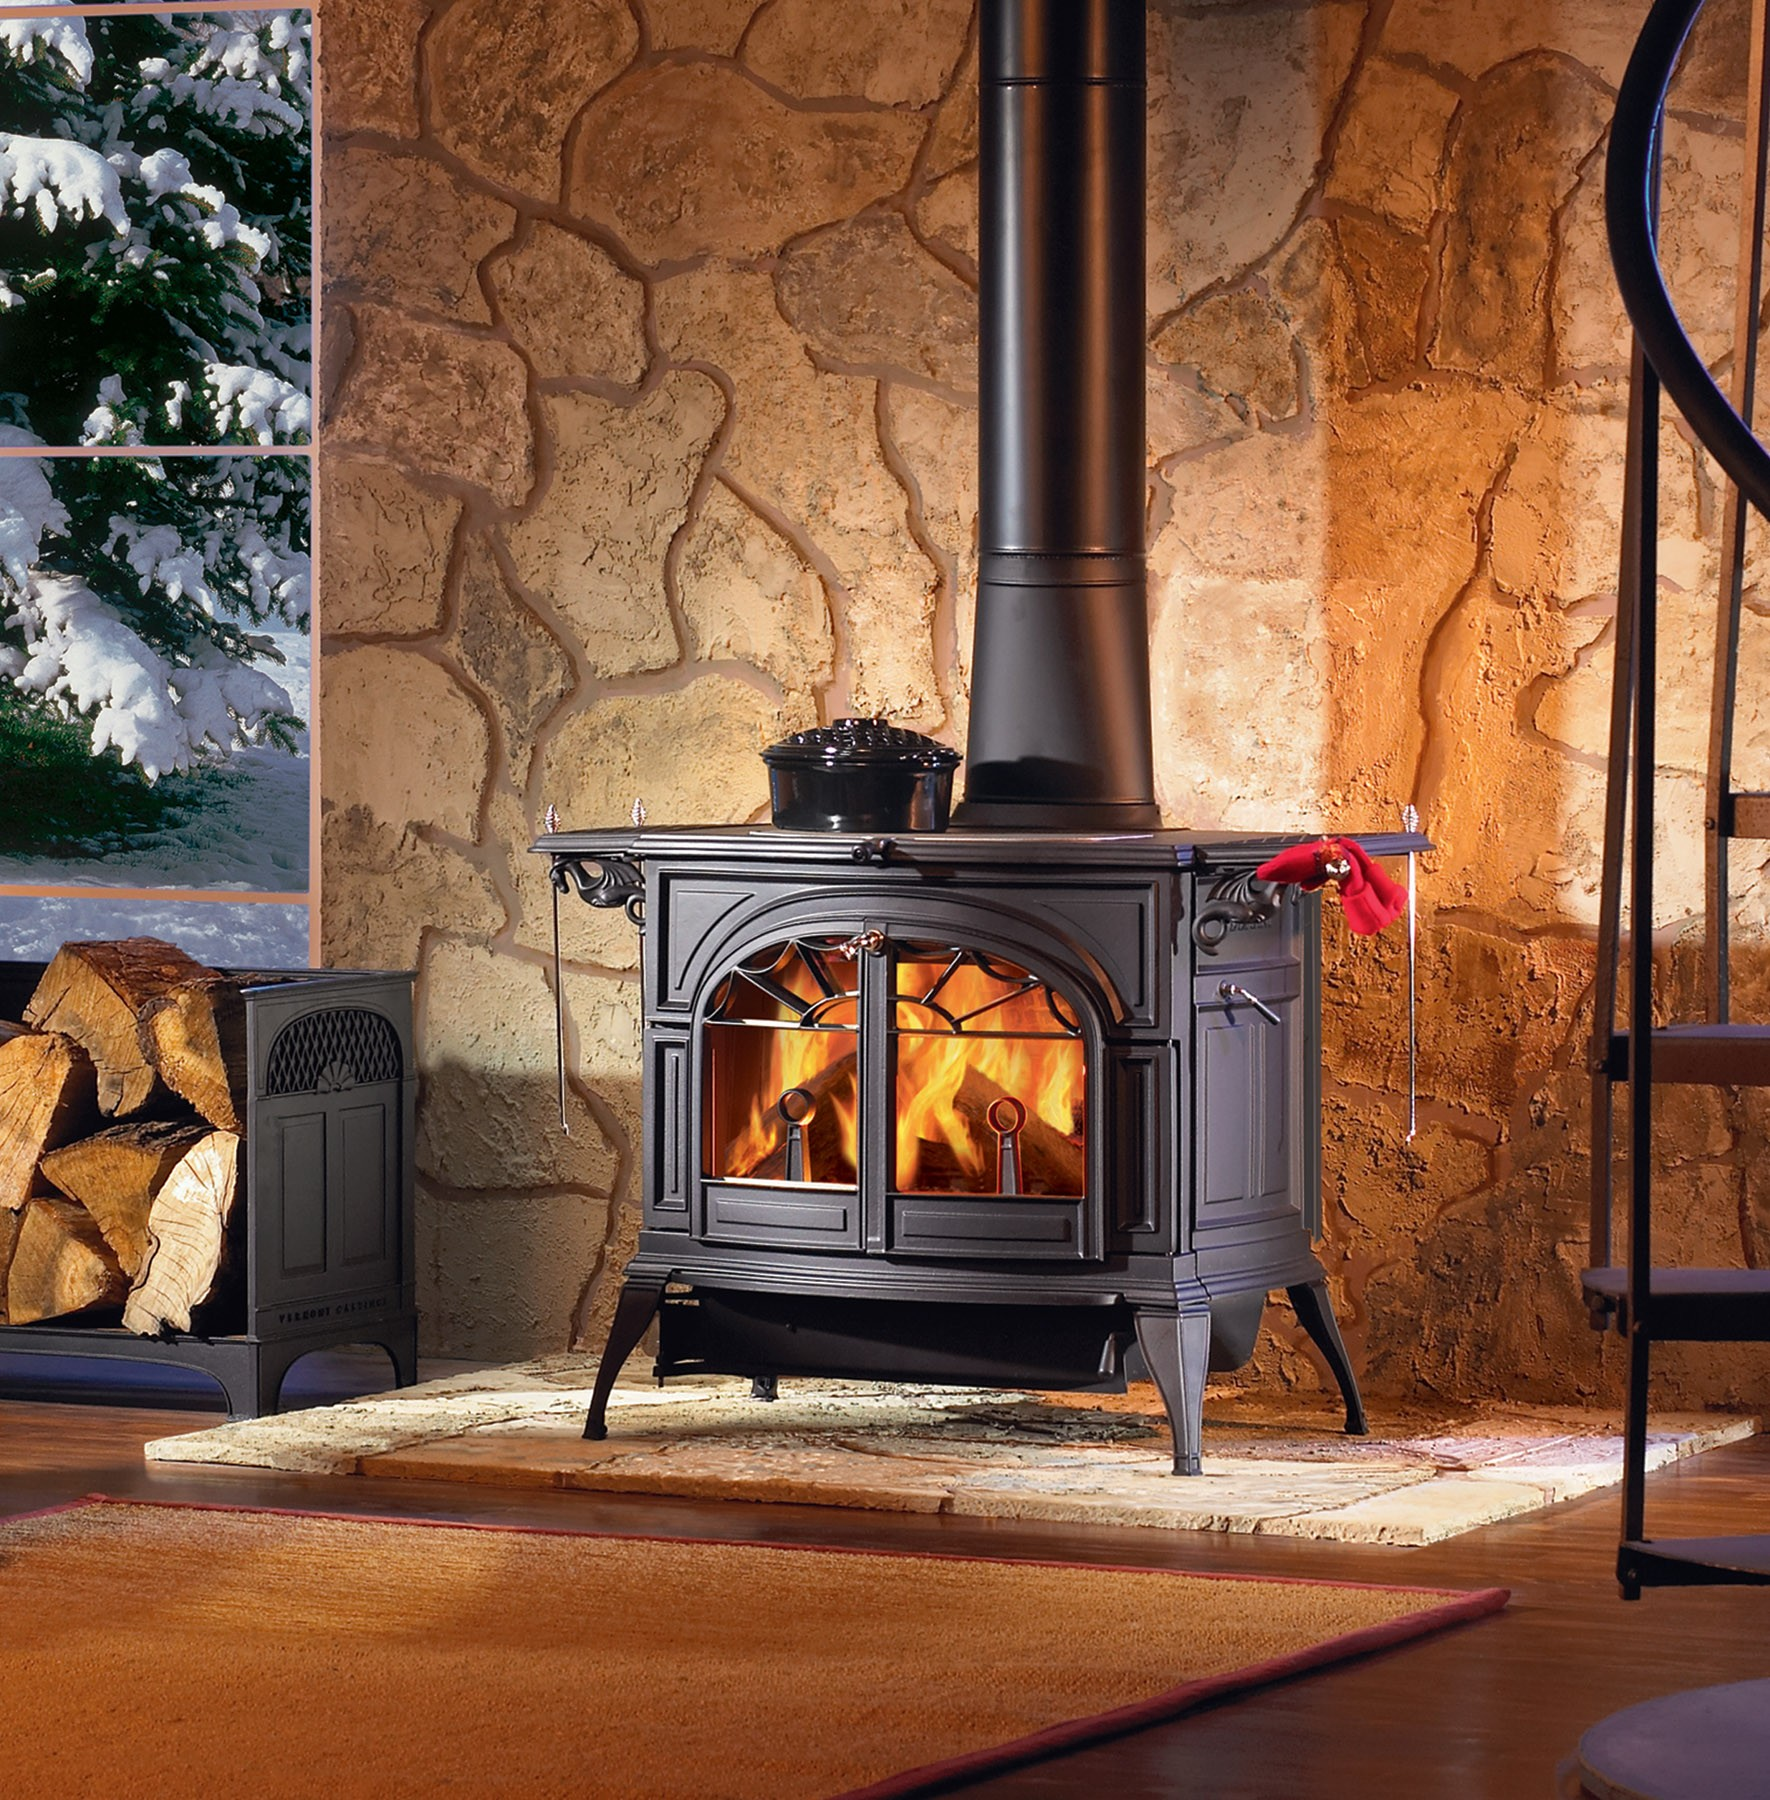 Bowden 39 s fireside wood burning stoves inserts bowden 39 s Wood burning stoves